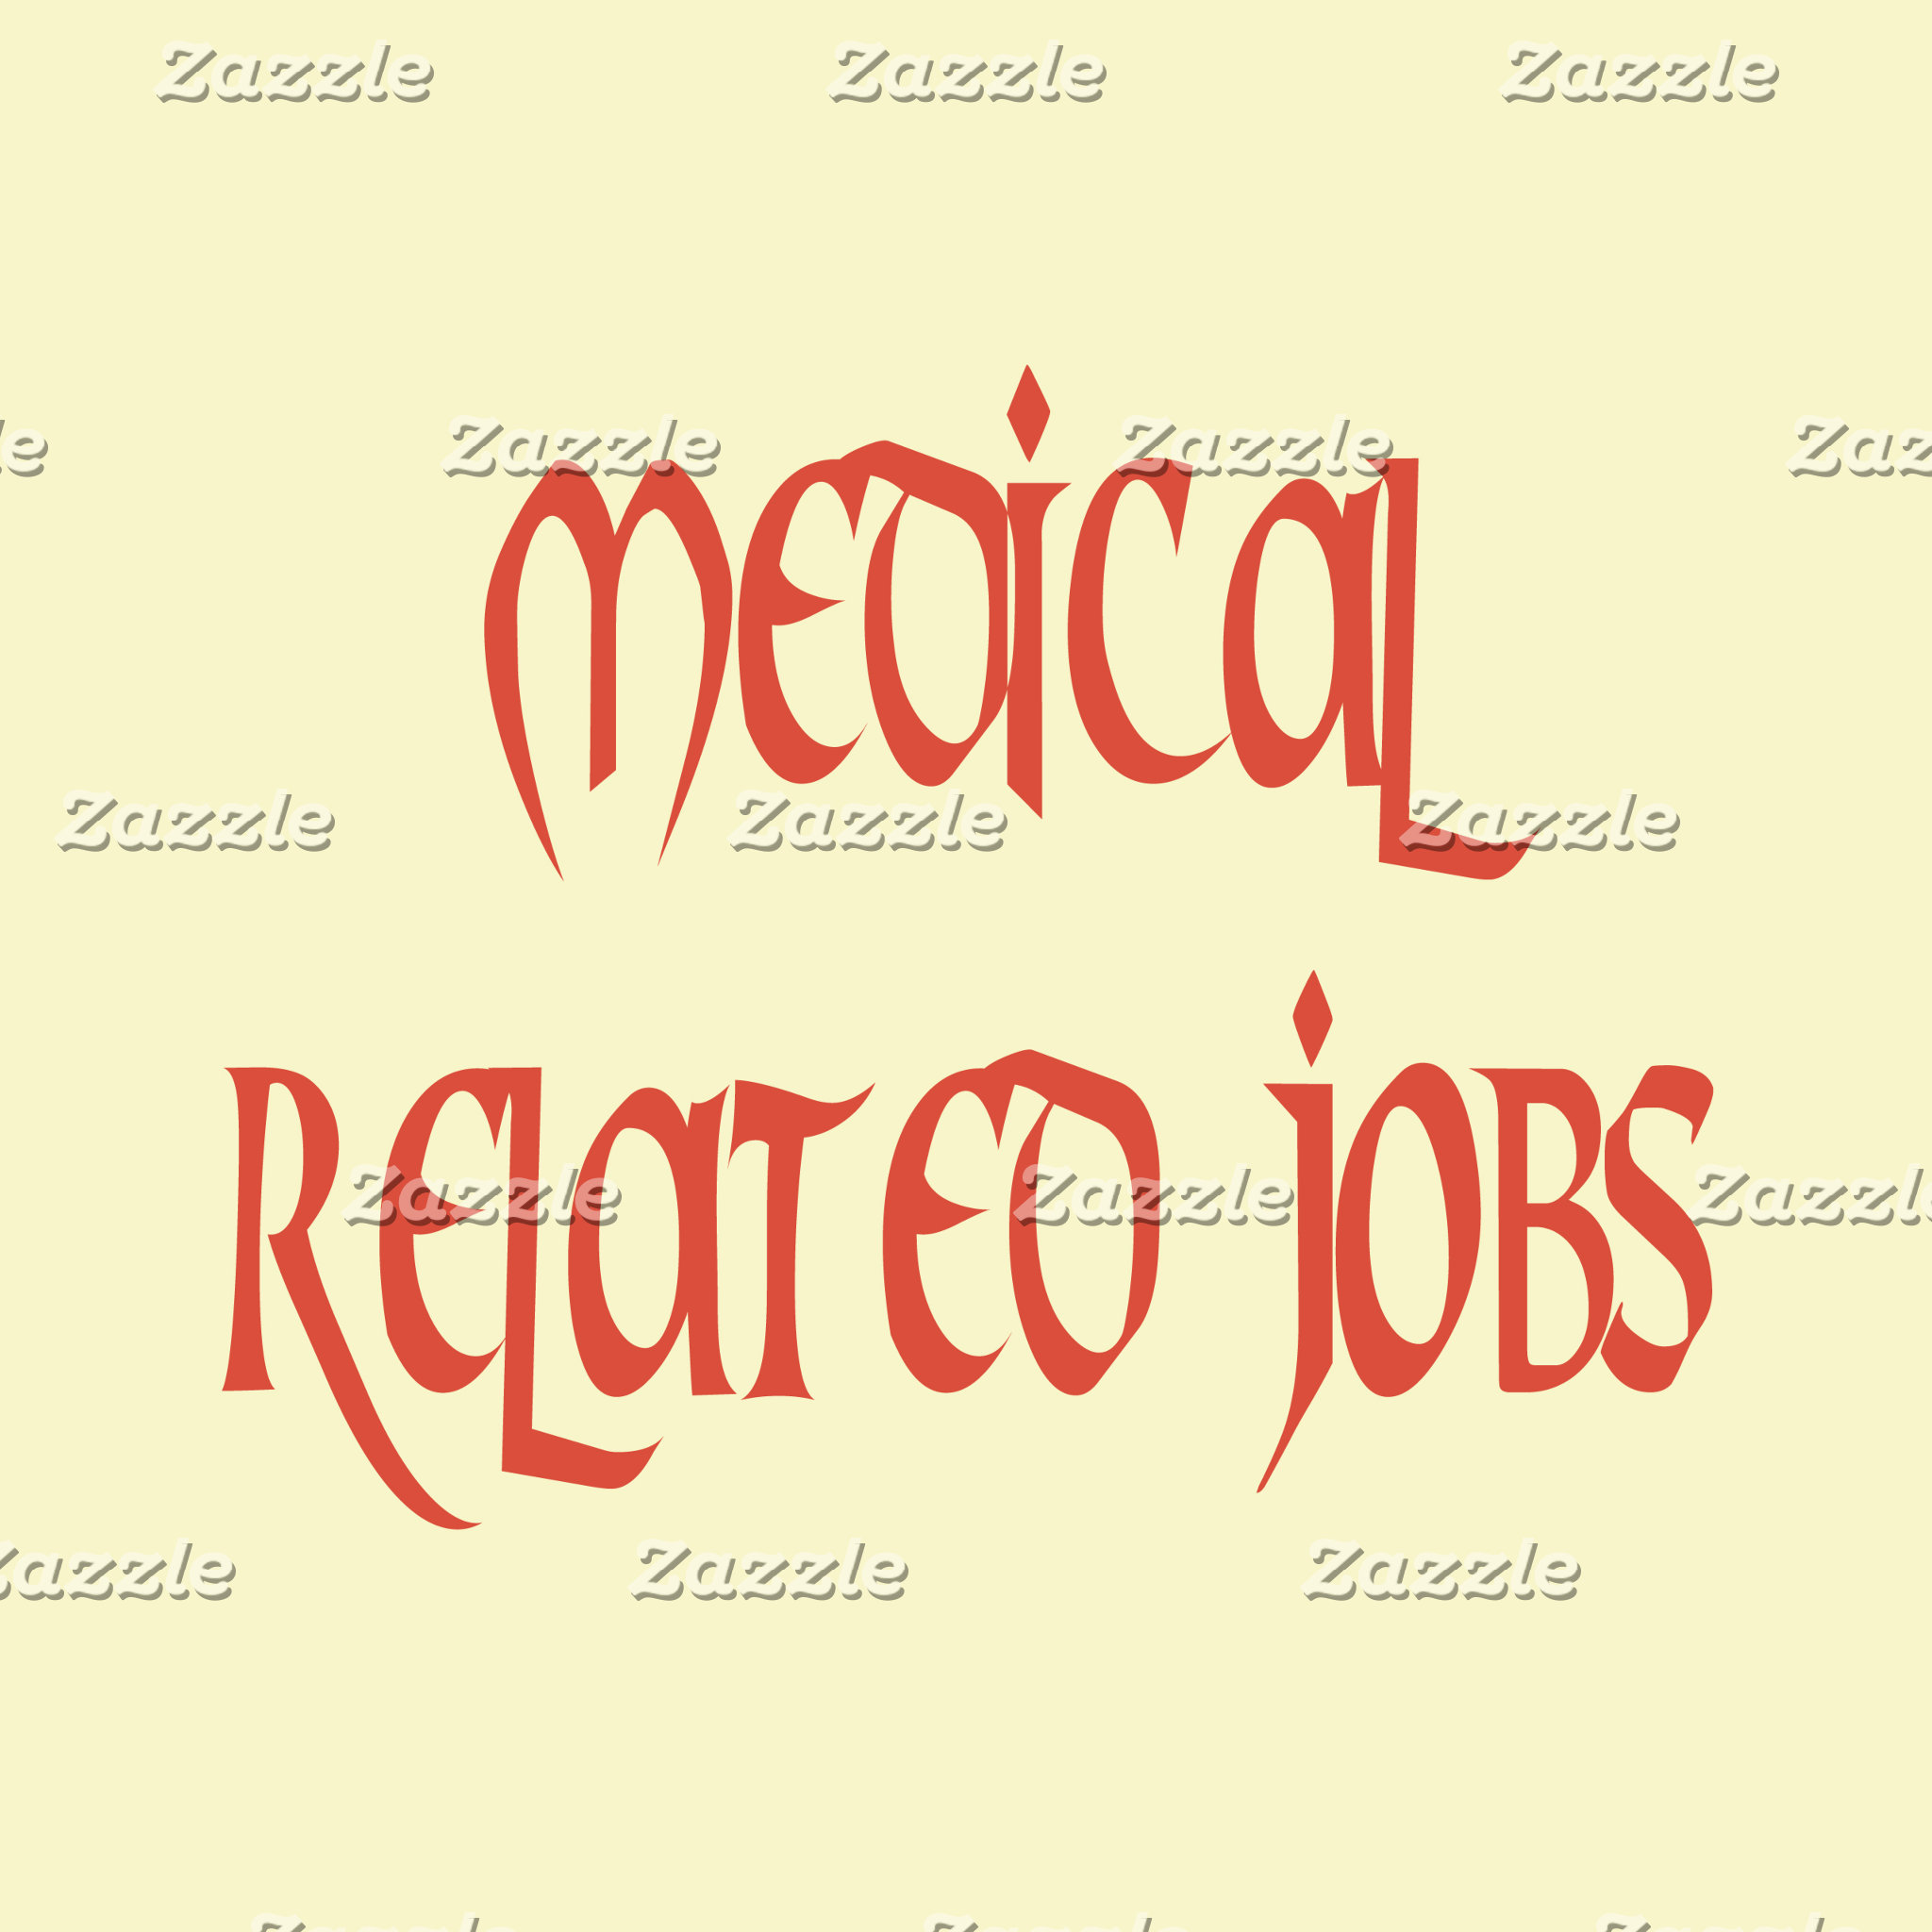 Medical Related Jobs